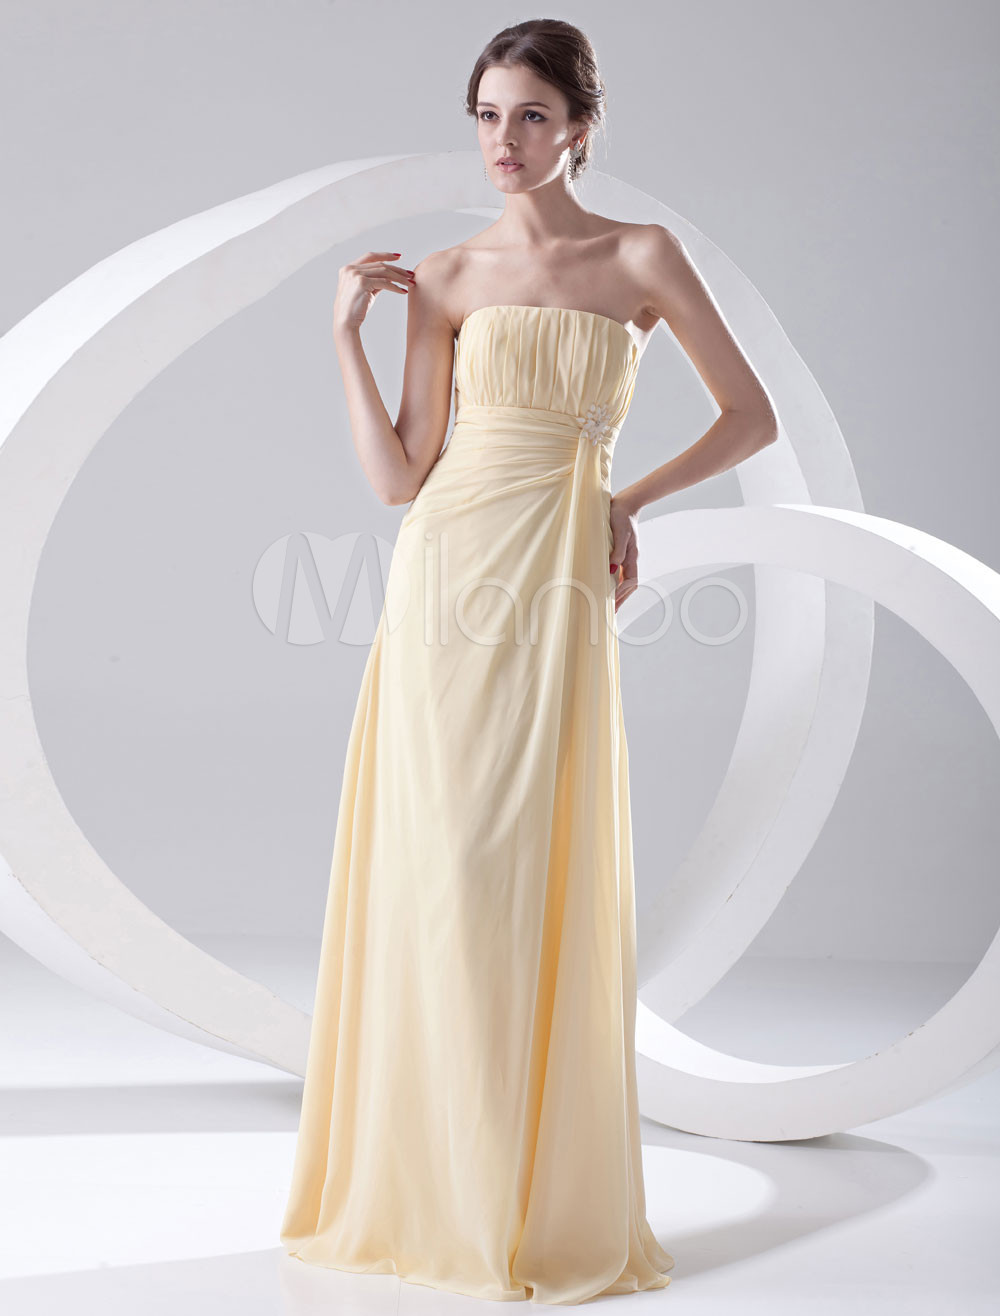 Sheath Daffodil Chiffon Beading Floor-Length Bridesmaid Dress For Wedding